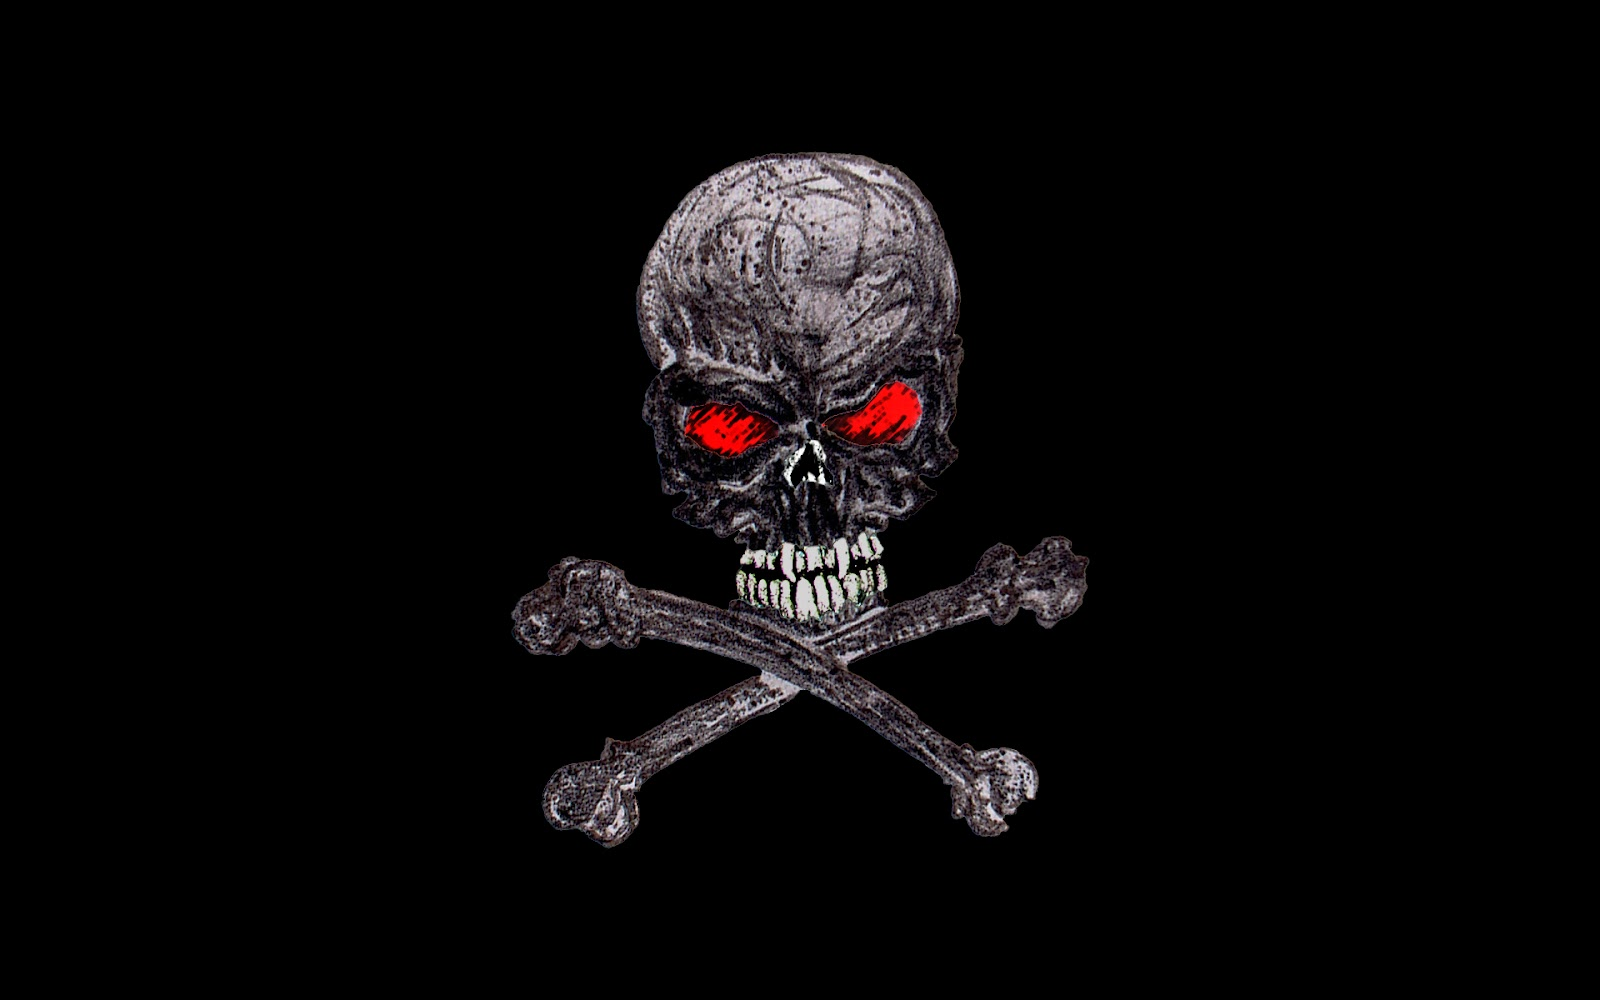 Wallpaper - Skull - For PC | Impact Wallpapers Wallpapers 1920x1080 Full Hd